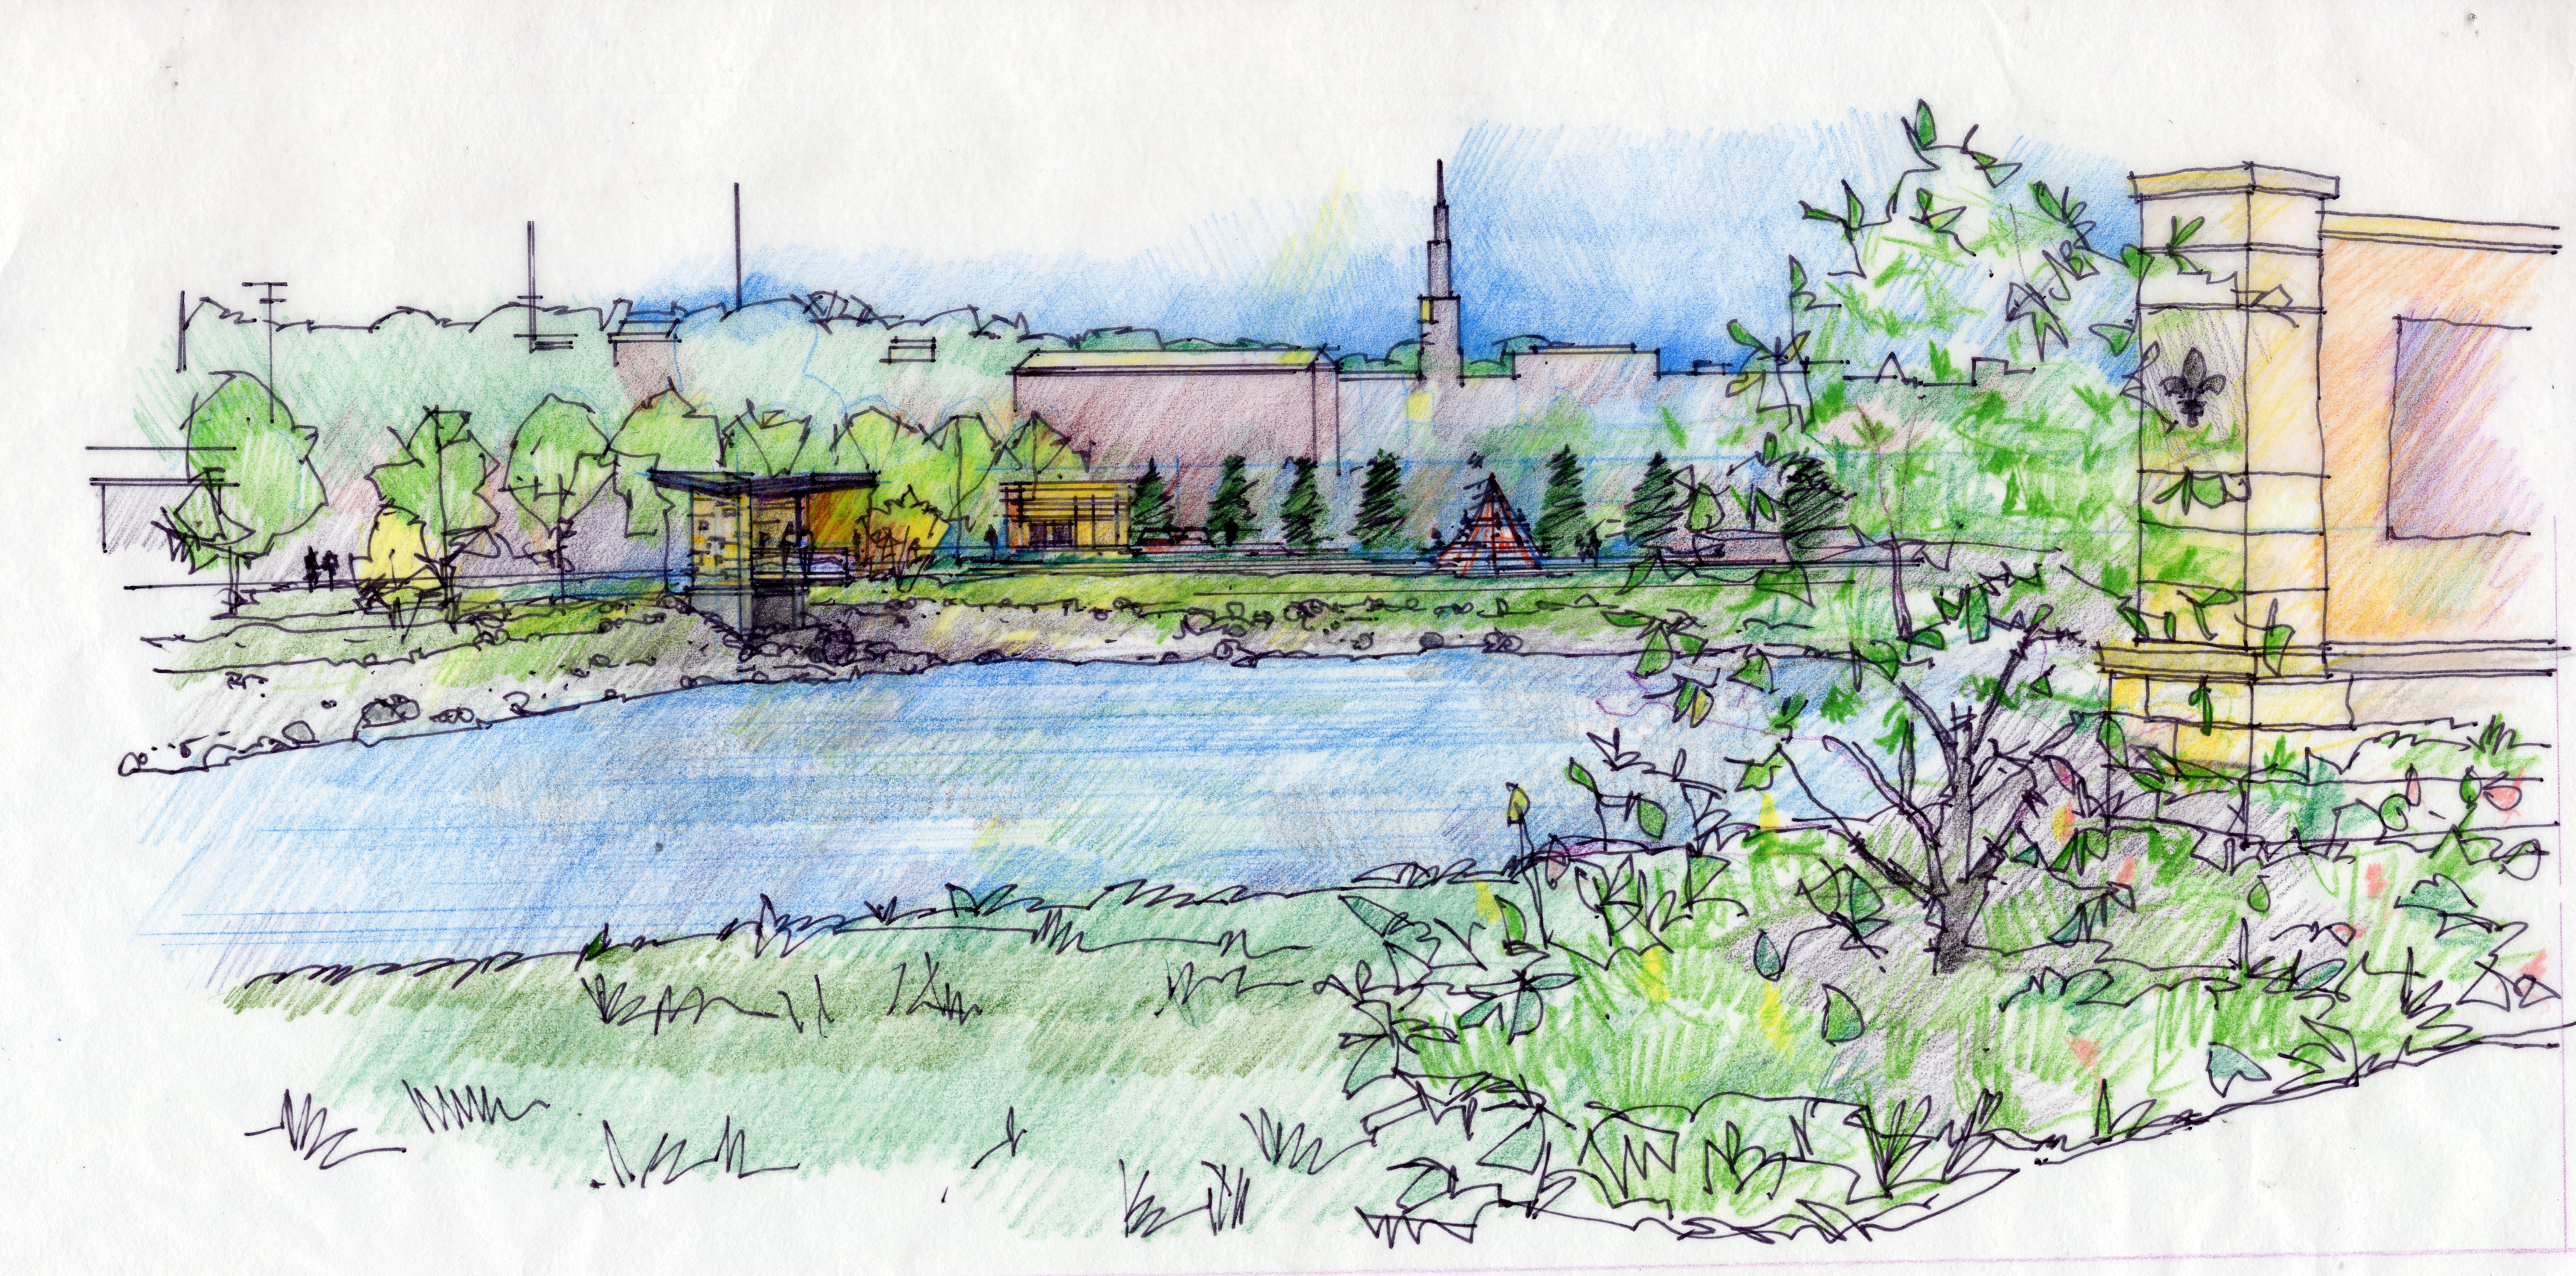 The project daylighted an existing storm sewer and created a linear corridor for stormwater management and conveyance that was envisioned as a useable and significant open space amenity for the neighborhood and City.